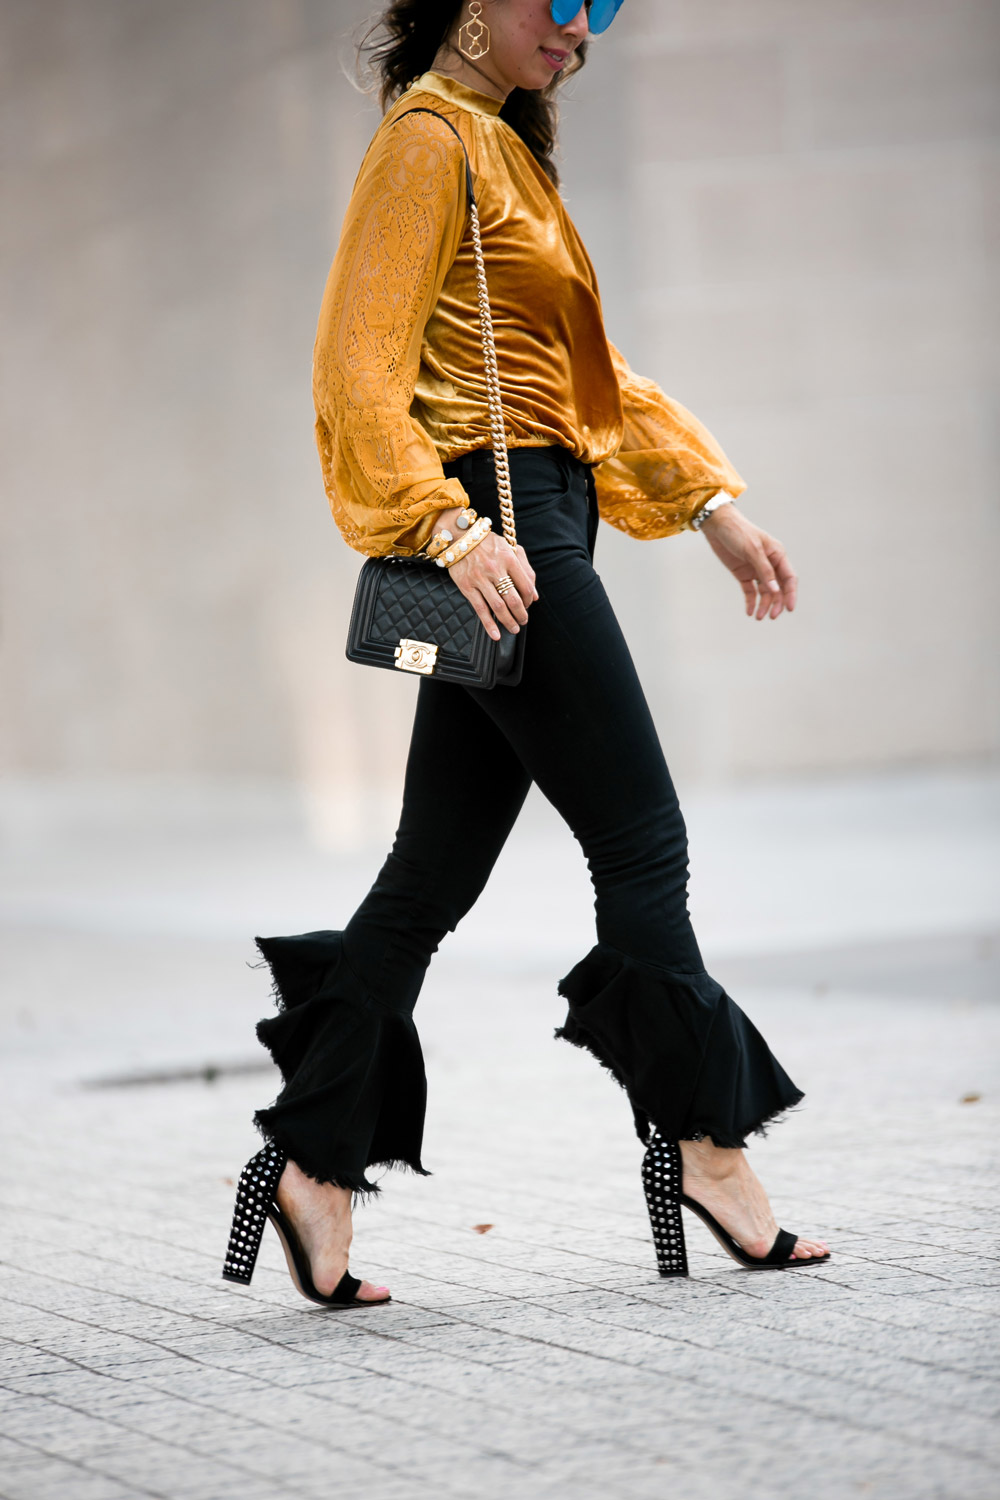 marigold velvet lace top citizens of humanity drew flounce jeans chanel boy bag dolce vita studded sandals